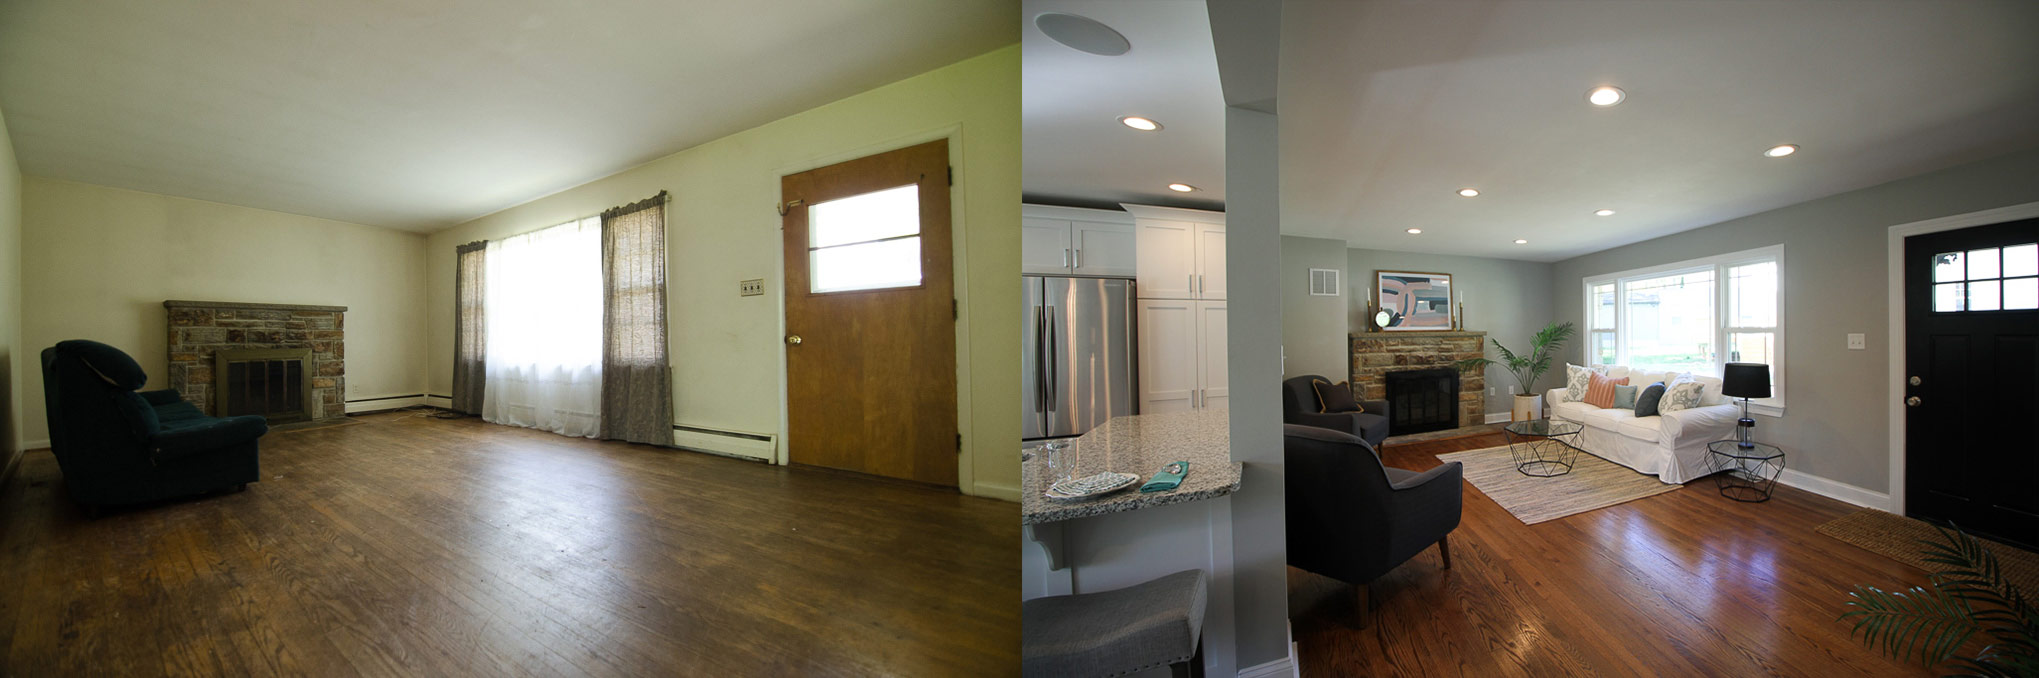 Living room before and after joppa road renovation and flip